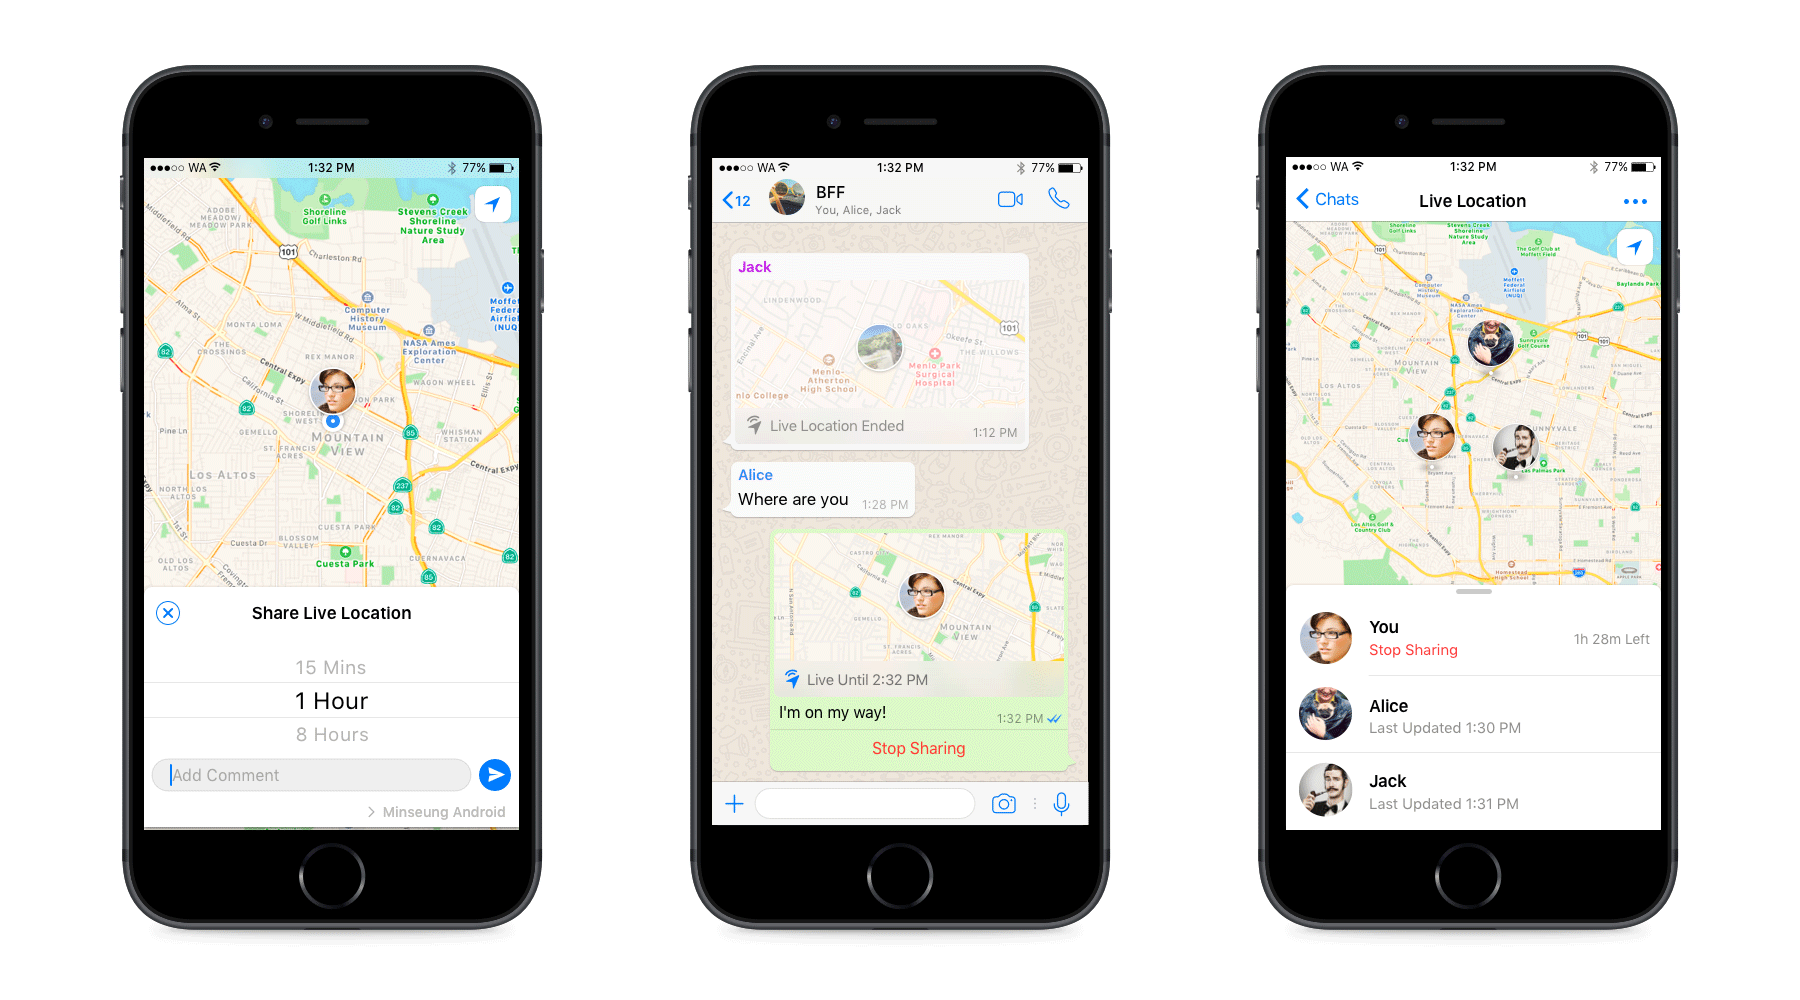 Share your live location on WhatsApp; only if you want